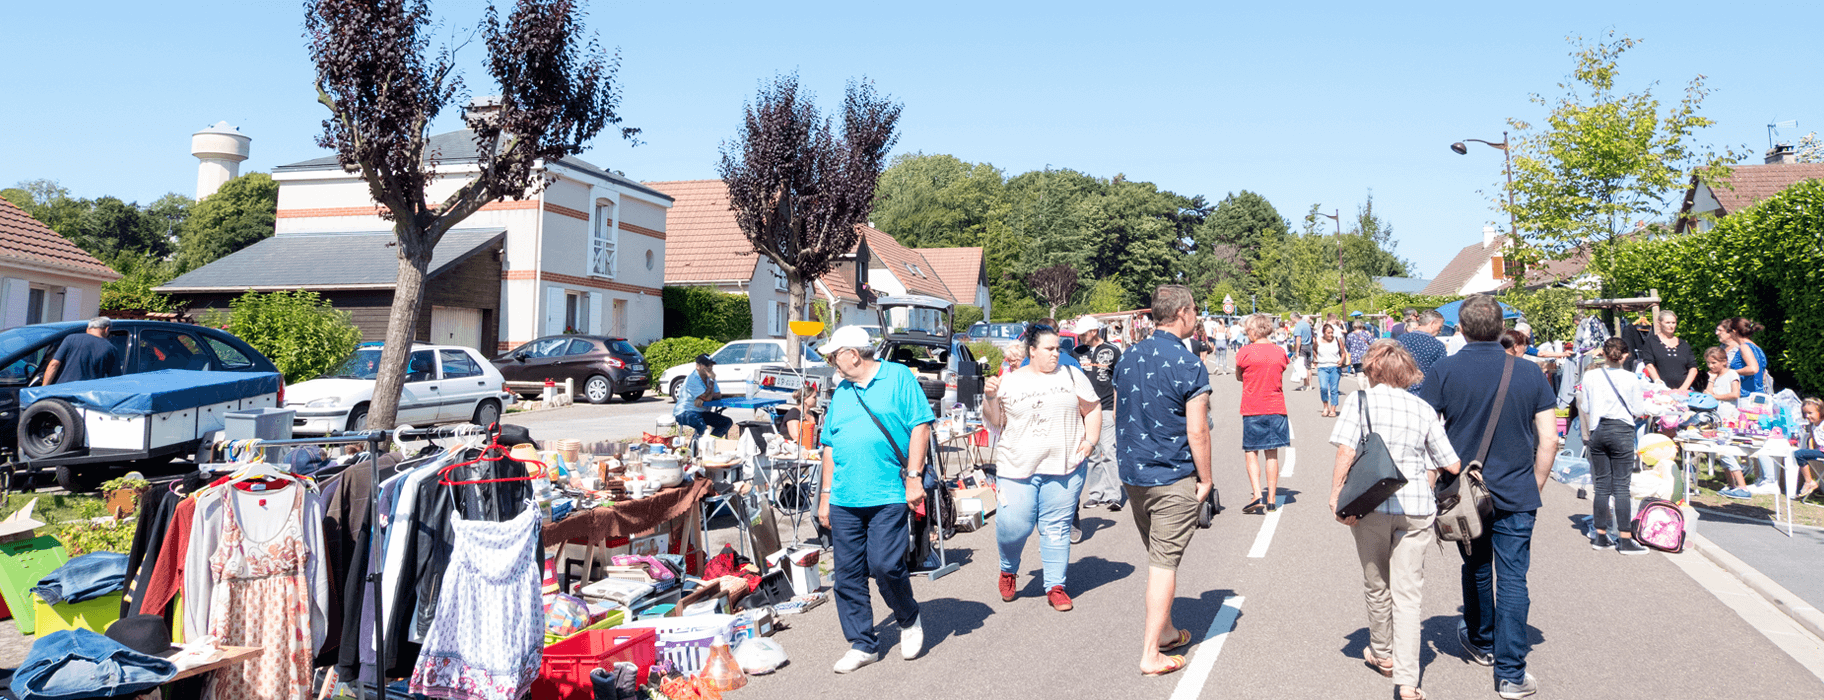 Benefits of Garage Sales for Sellers and Buyers